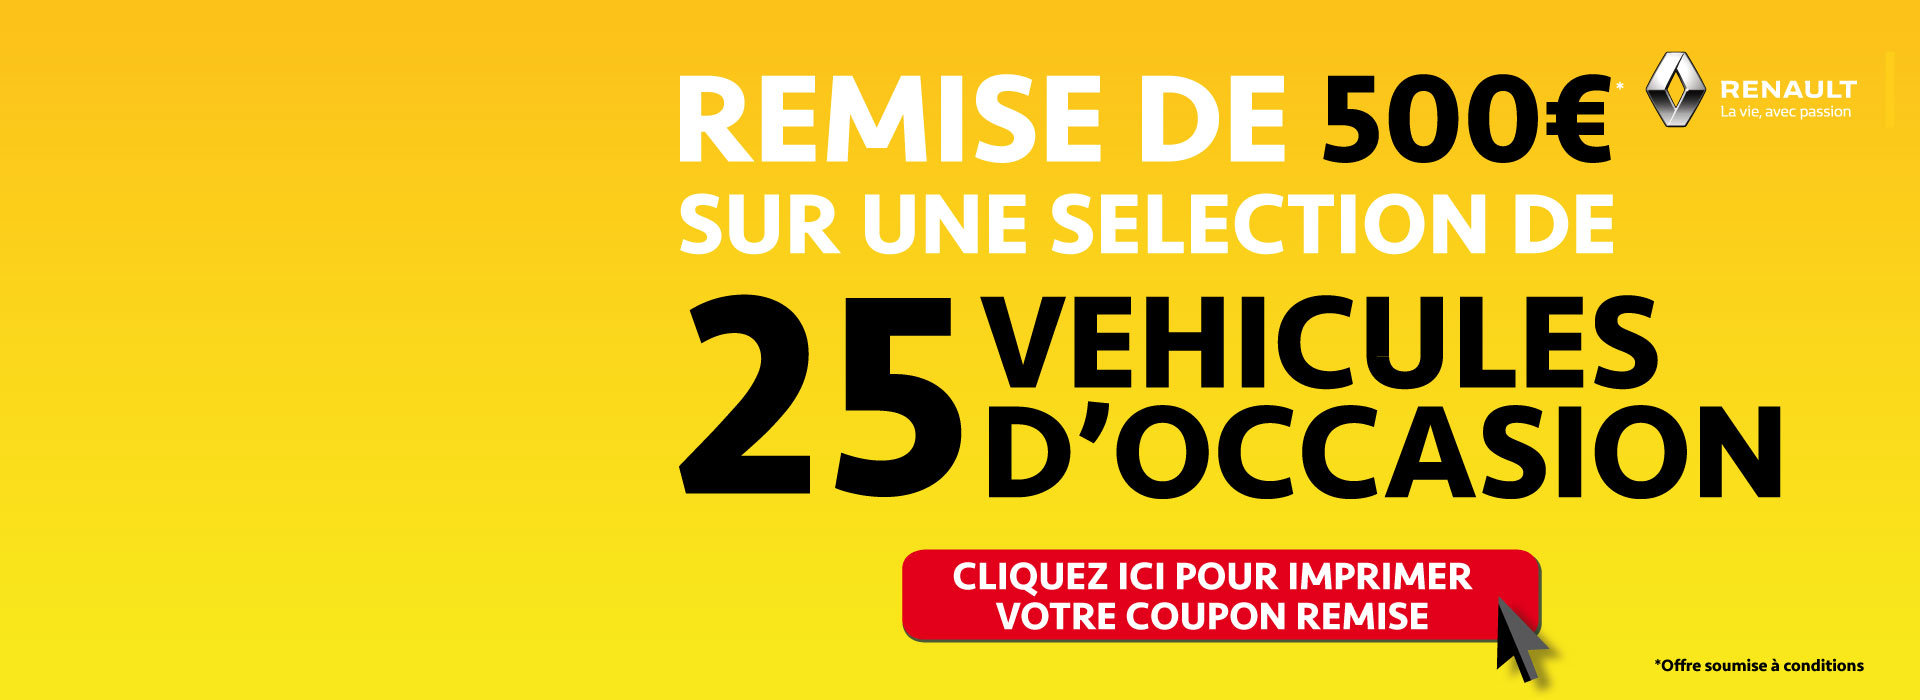 Offre Véhicules d'occasion